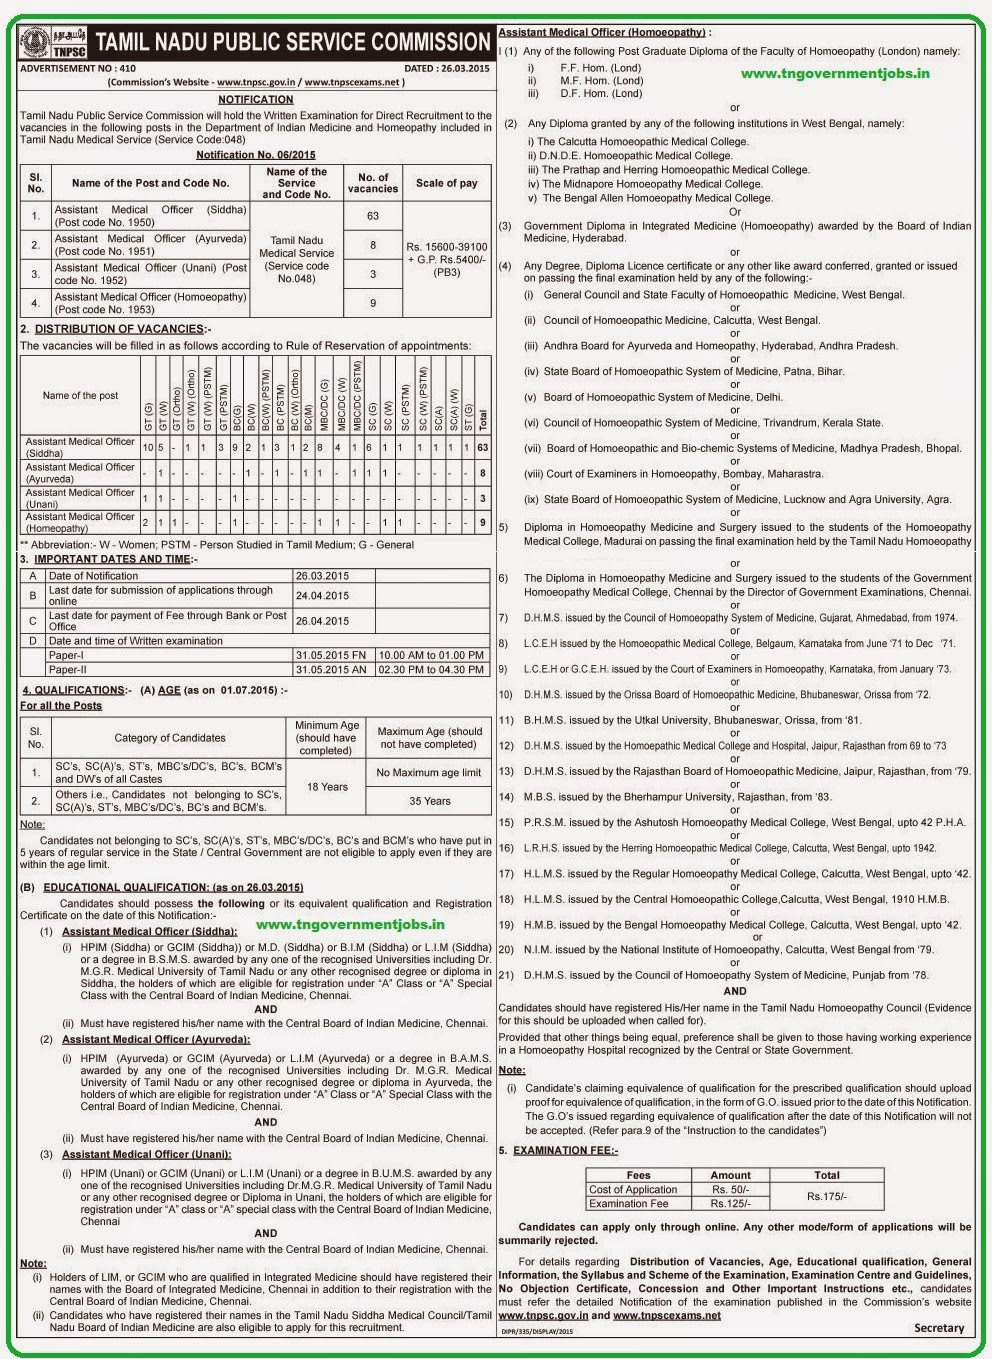 Tamil Nadu Public Service Commission (TNPSC) Siddha, Ayurveda, Unani and Homoeopathy Doctors Vacancy (www.tngovernmentjobs.in)